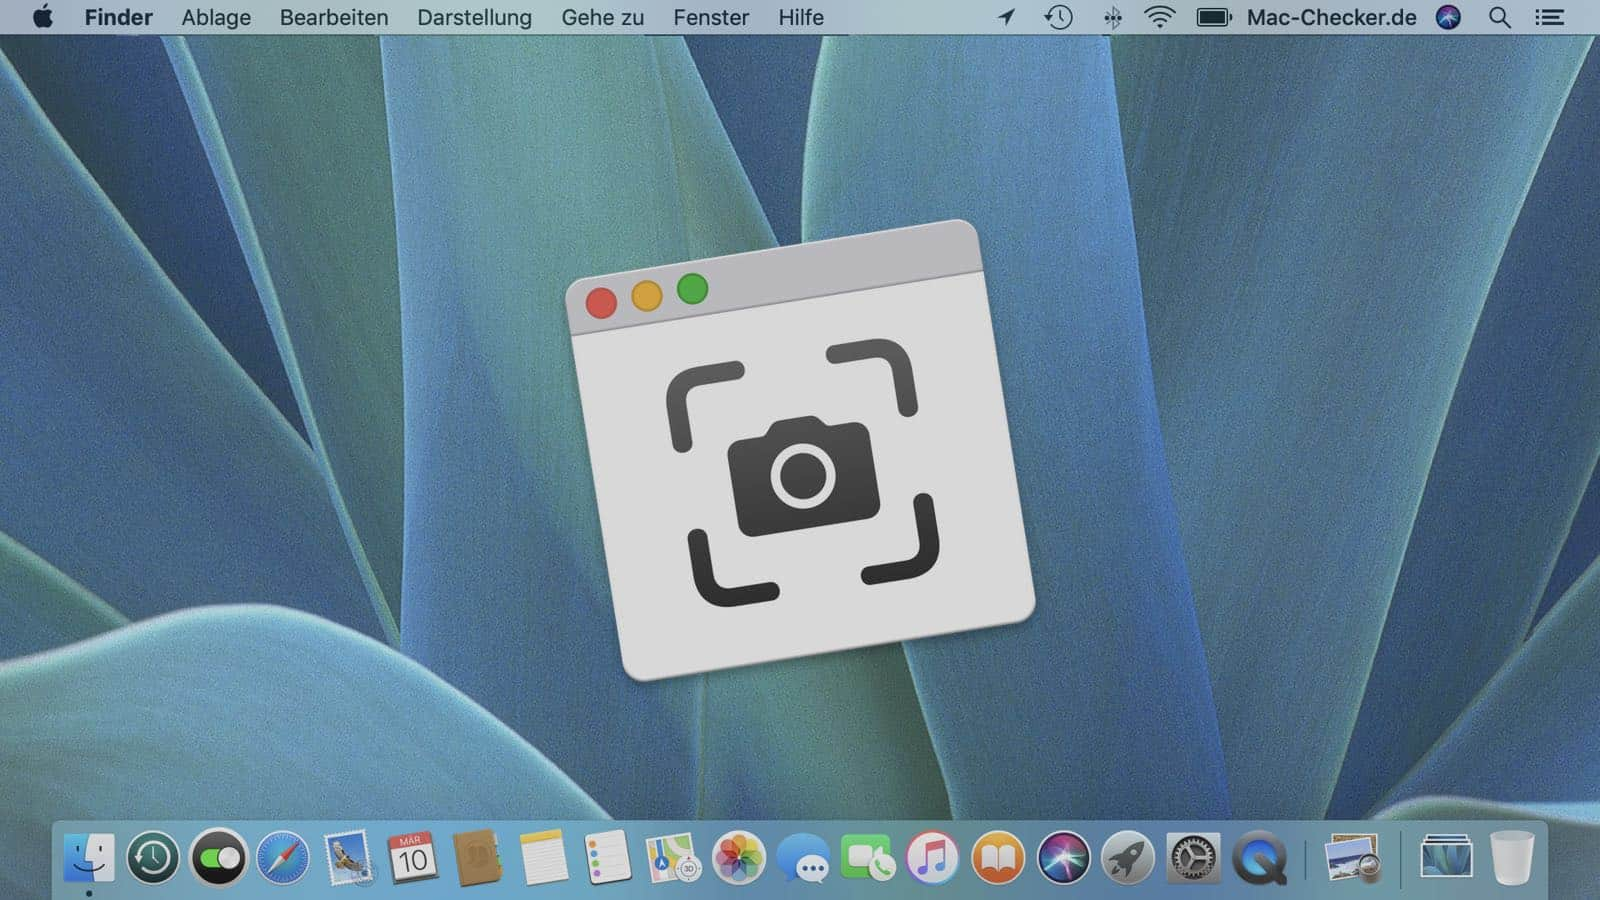 Screenshot Mac Bildschirmfoto In Macos Praxistipp Mac Checker